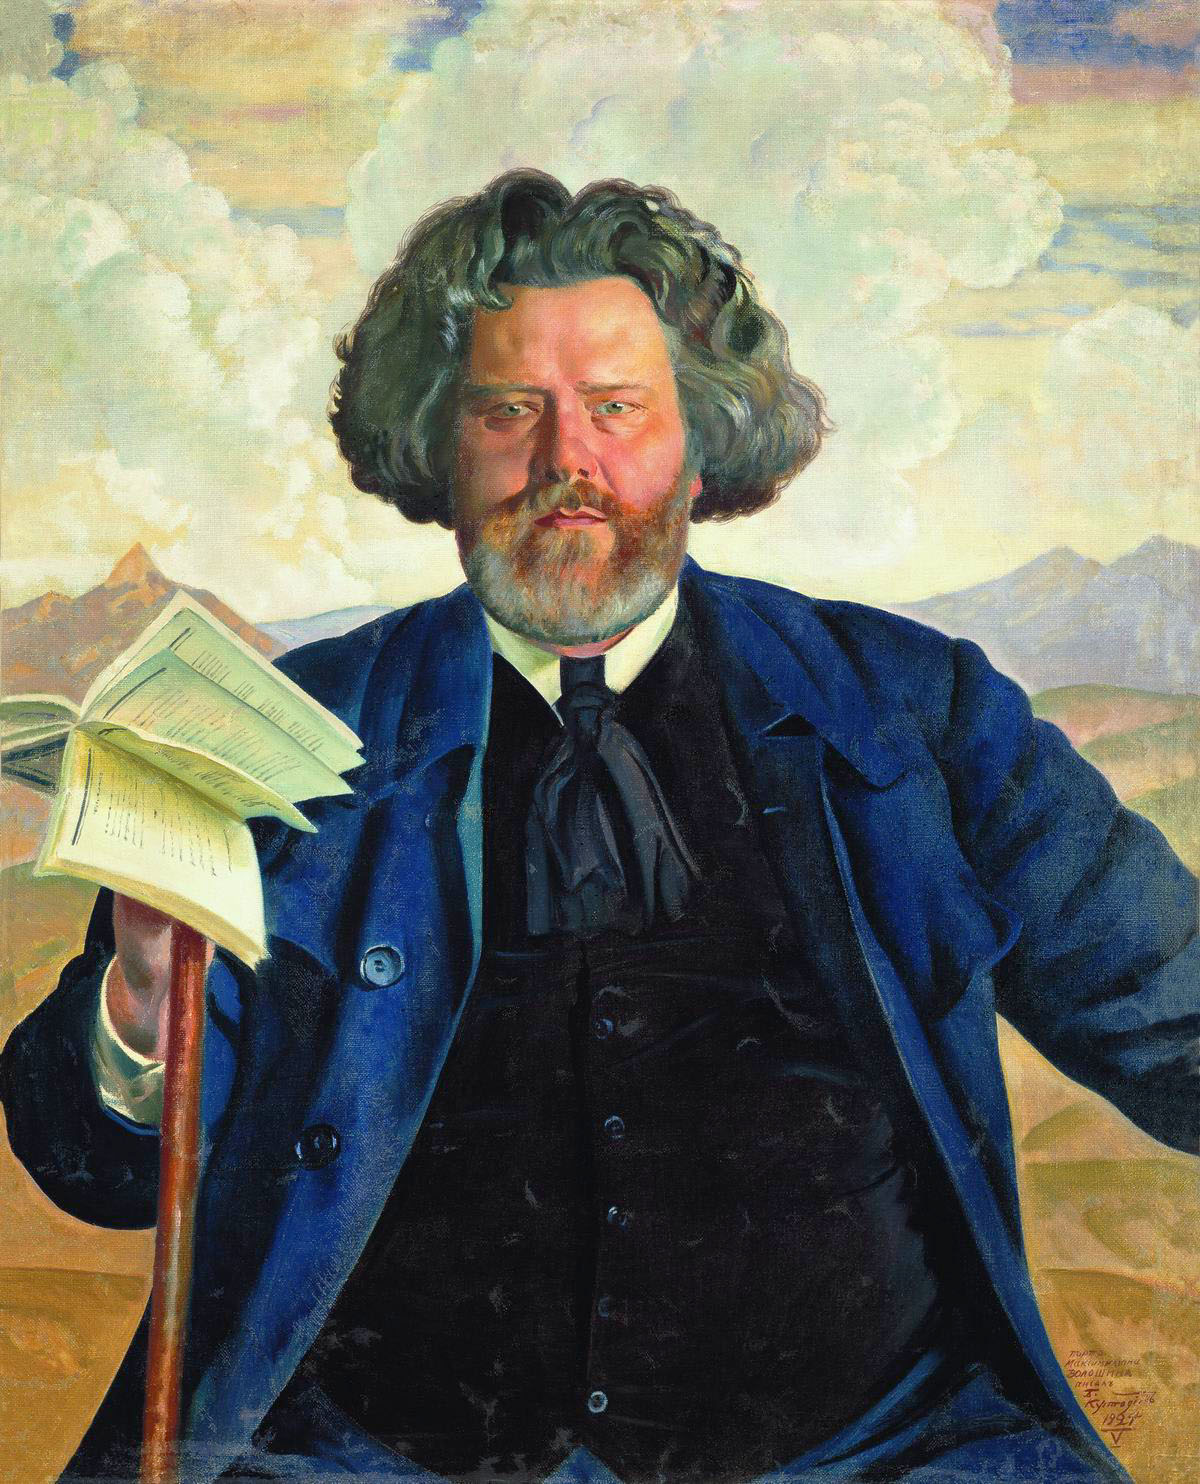 https://i2.wp.com/upload.wikimedia.org/wikipedia/commons/c/cb/Kustodiev_Voloshin.jpg